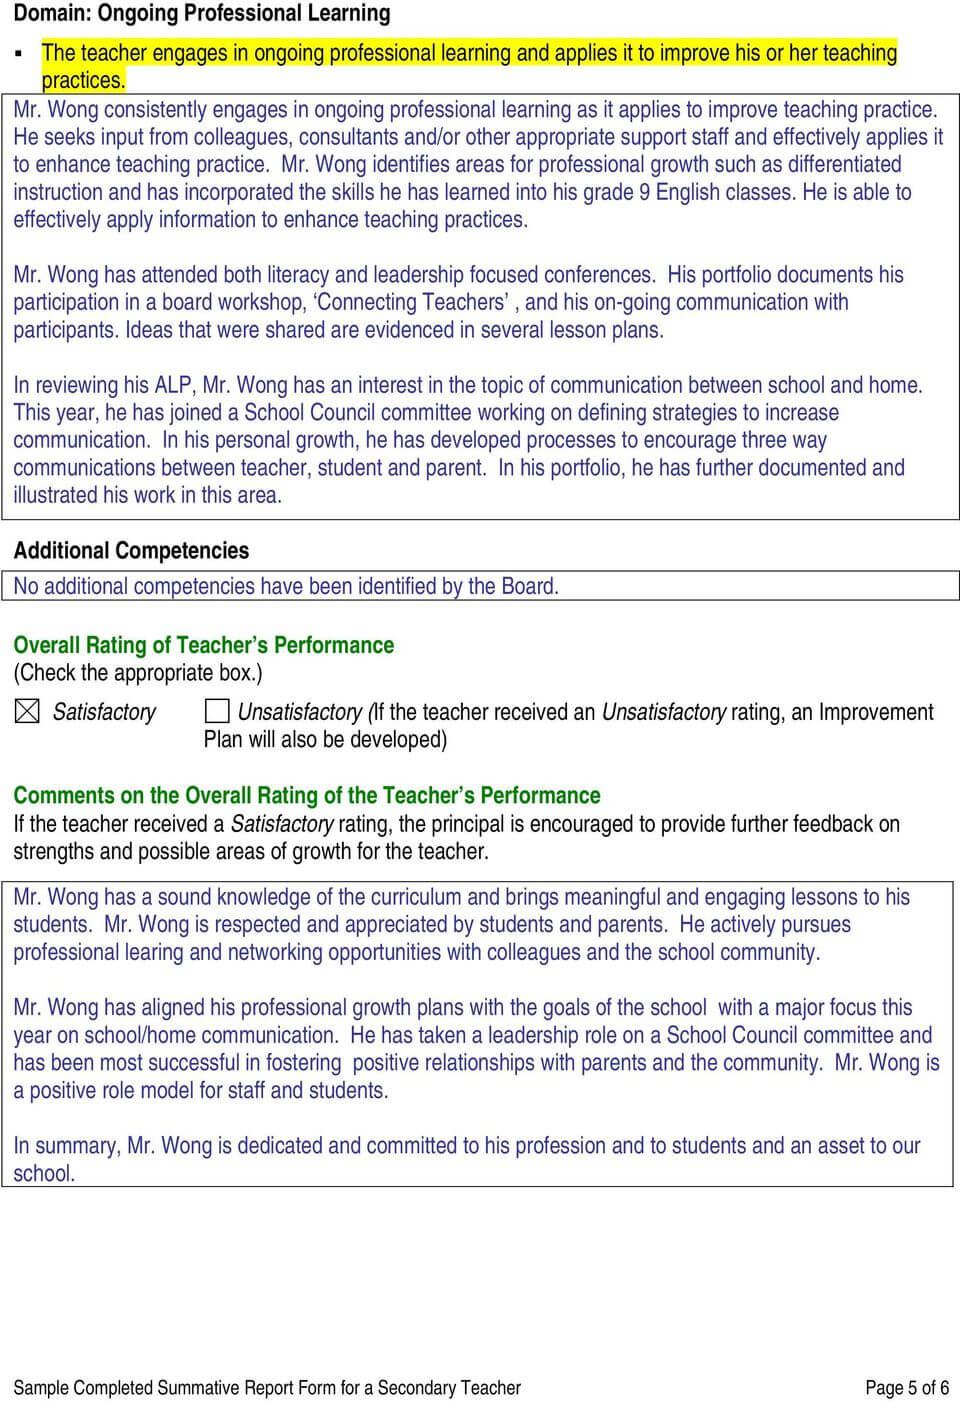 Sample Completed Summative Report Form For A Secondary in Pupil Report Template